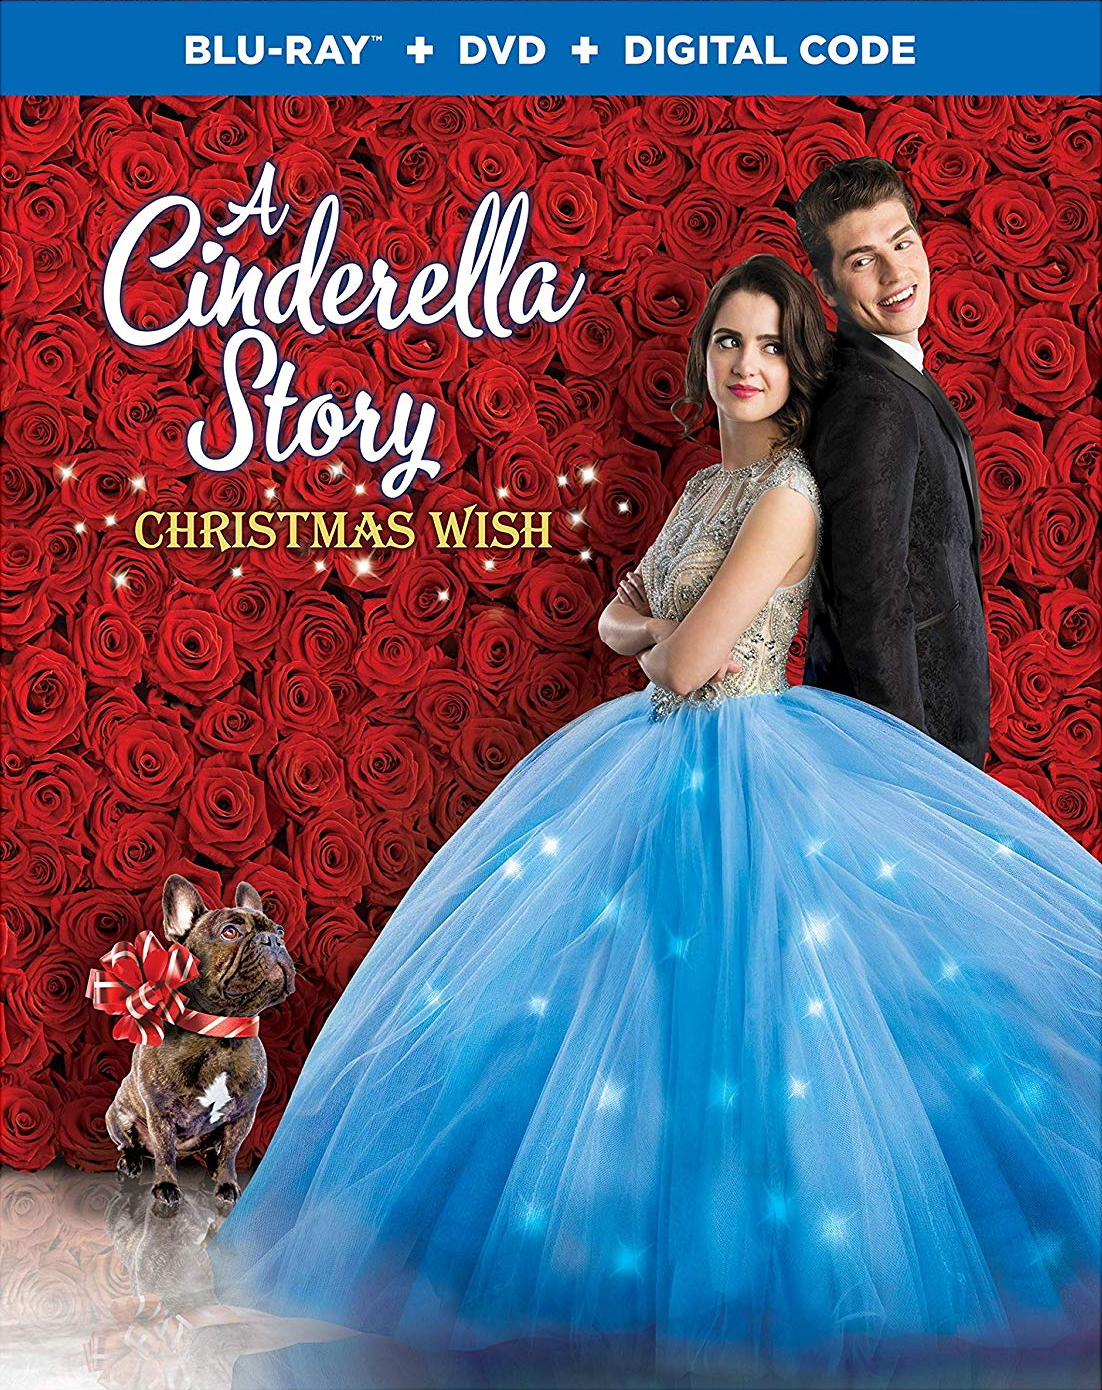 A Cinderella Story: Christmas Wish | Christmas Specials Wiki